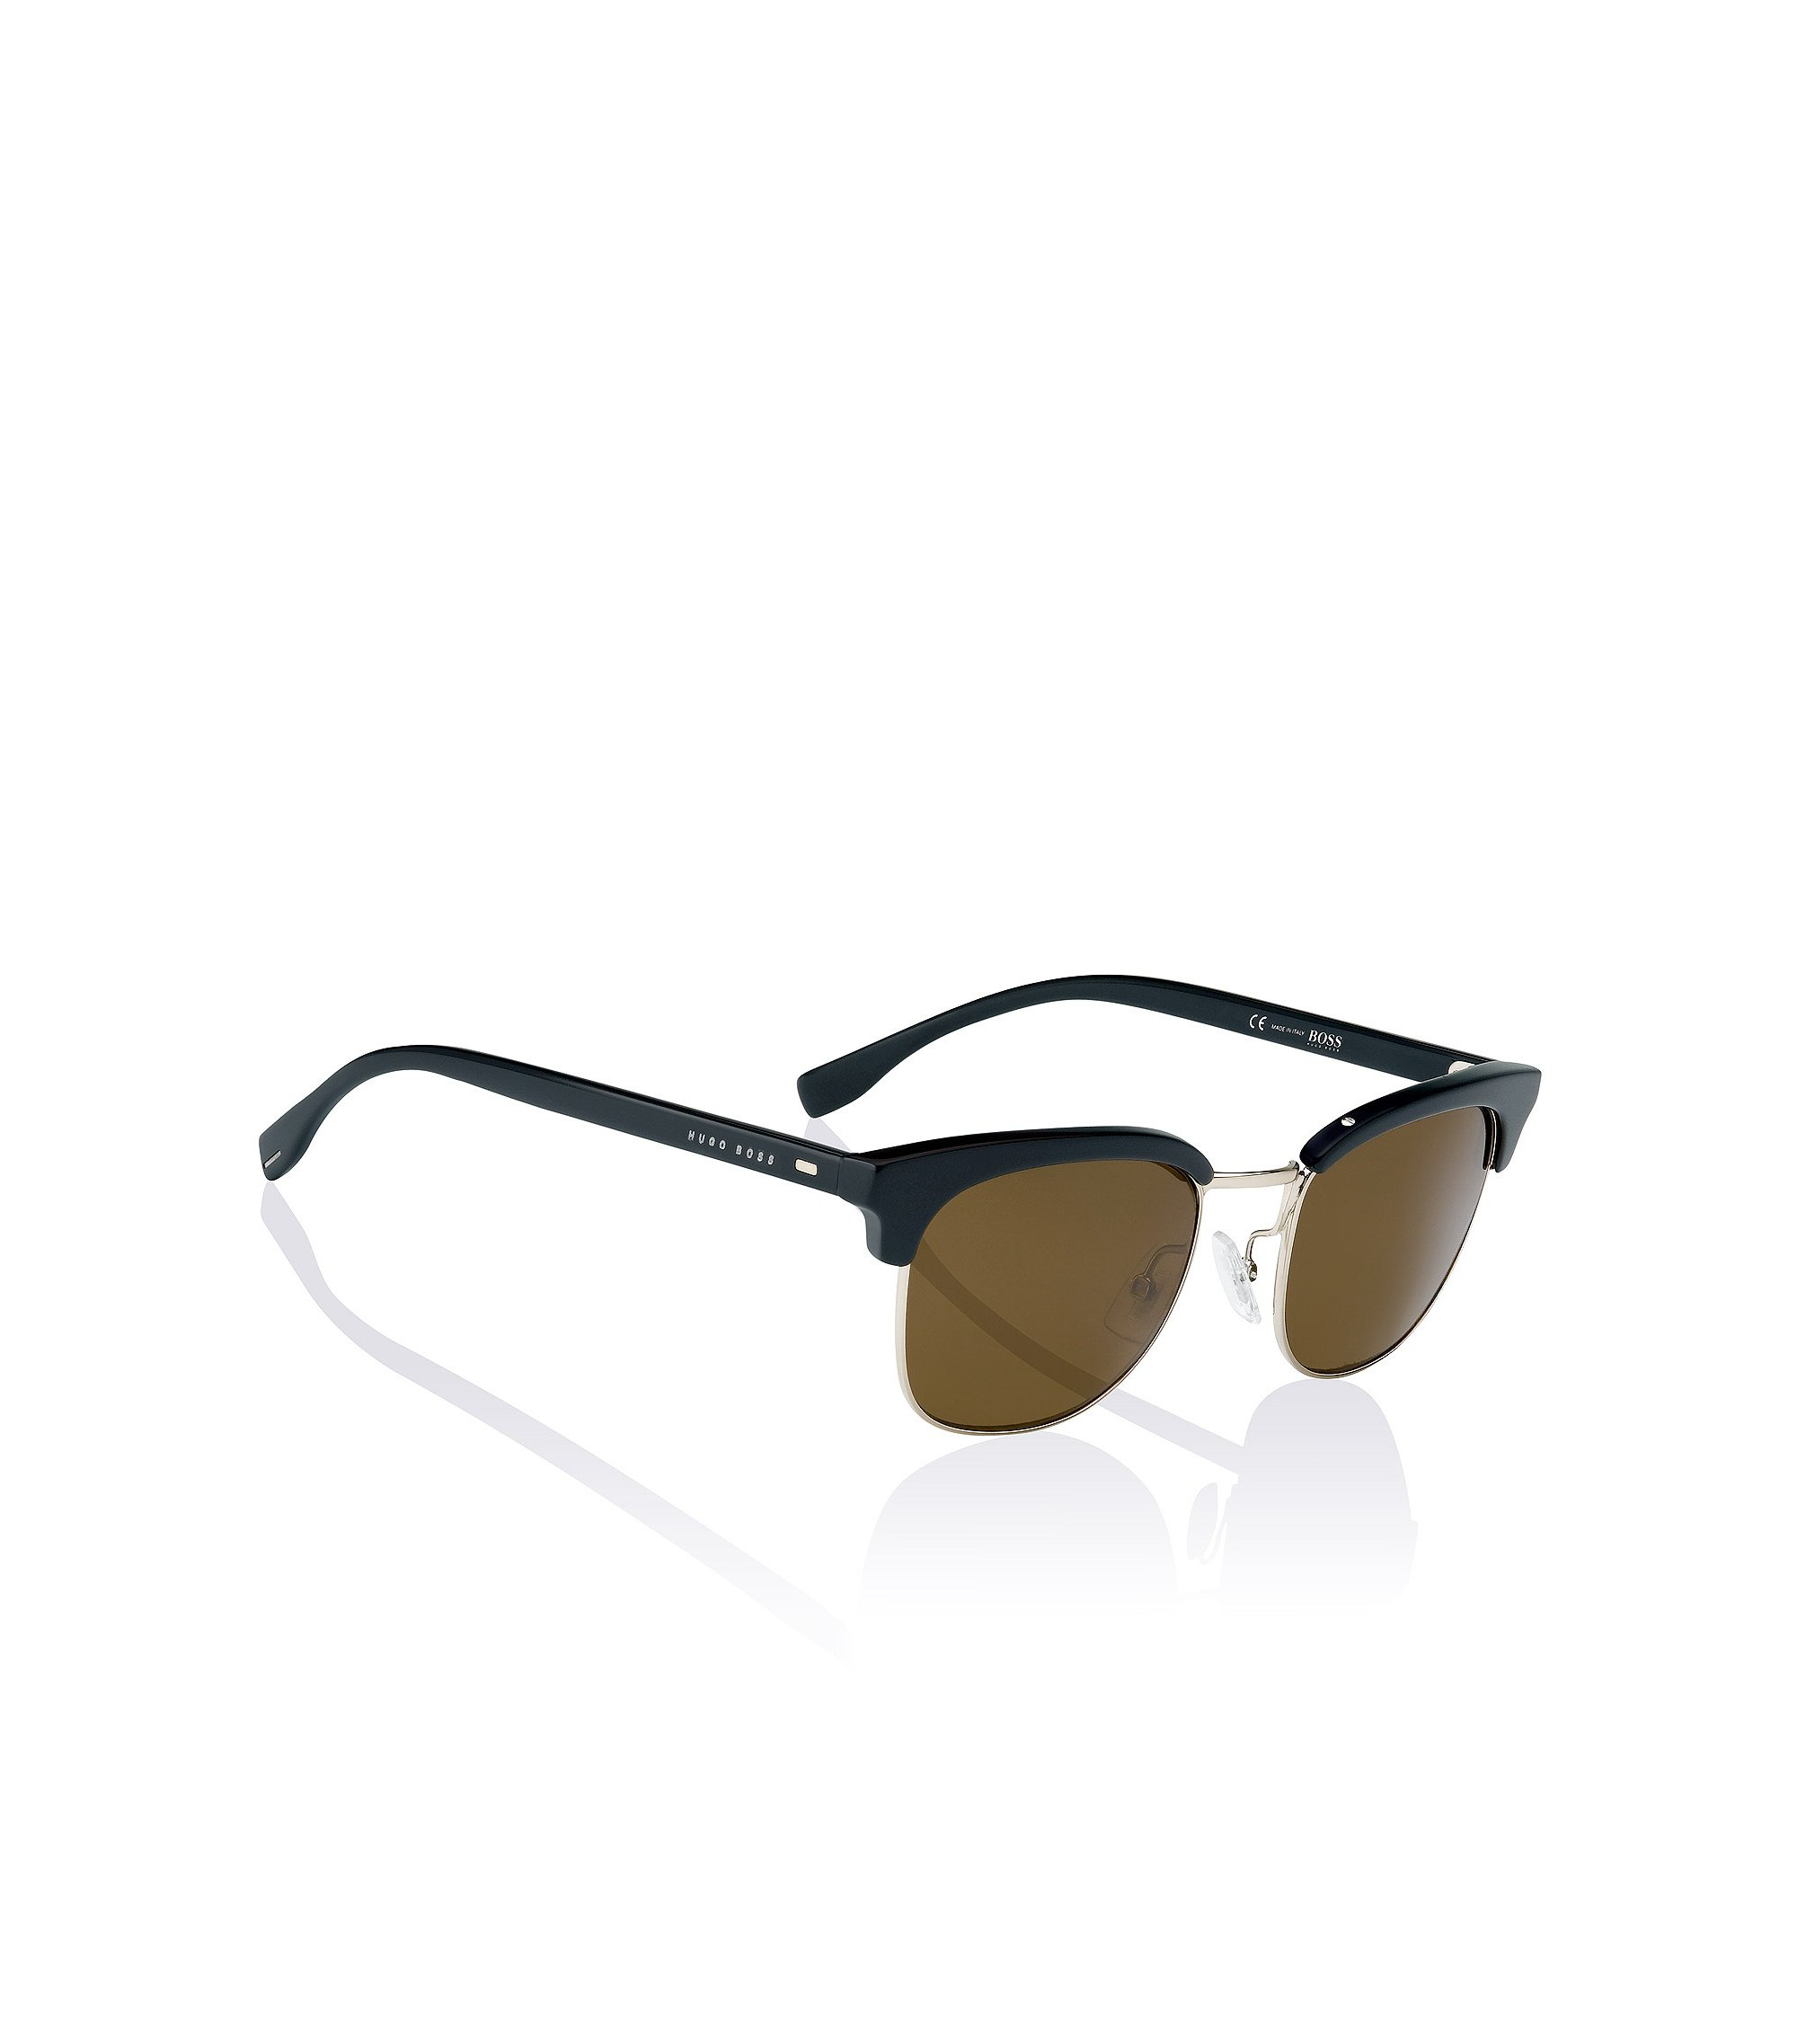 Clubmaster-Sonnenbrille ´BOSS 0667`, Assorted-Pre-Pack